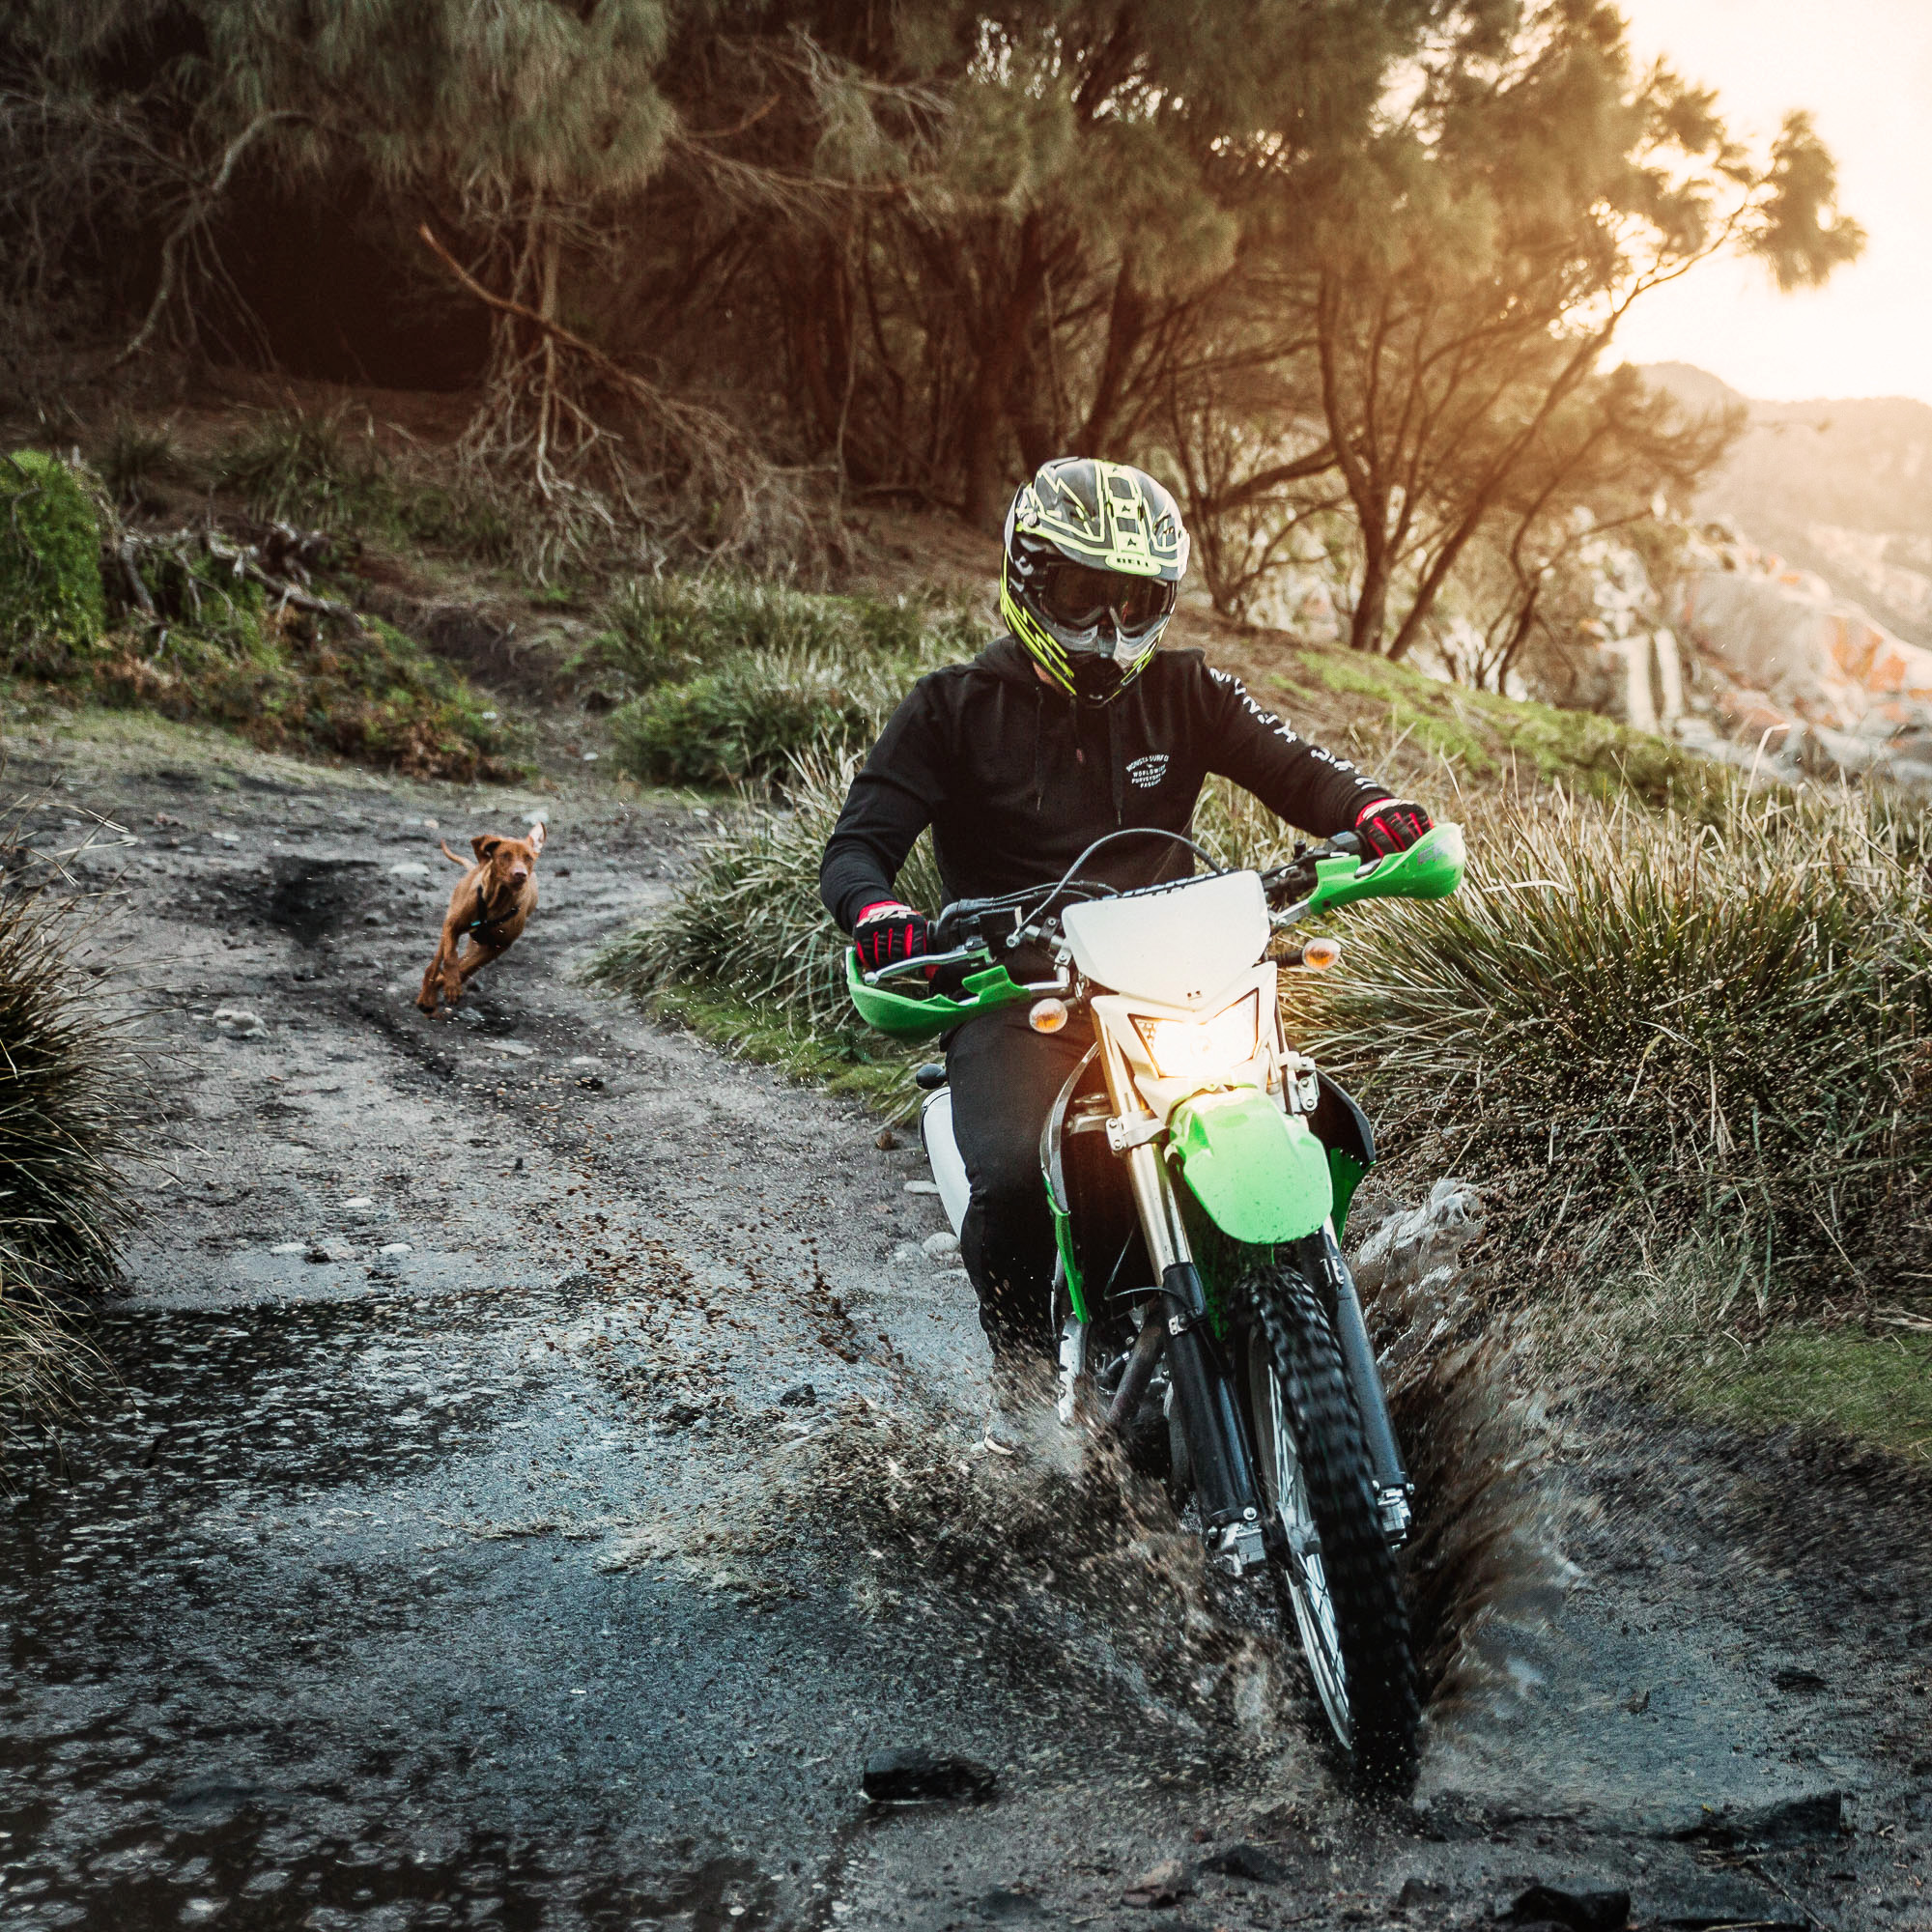 An off-road motorcycle rider in Australia blasts through a puddle as a dog follows along behind